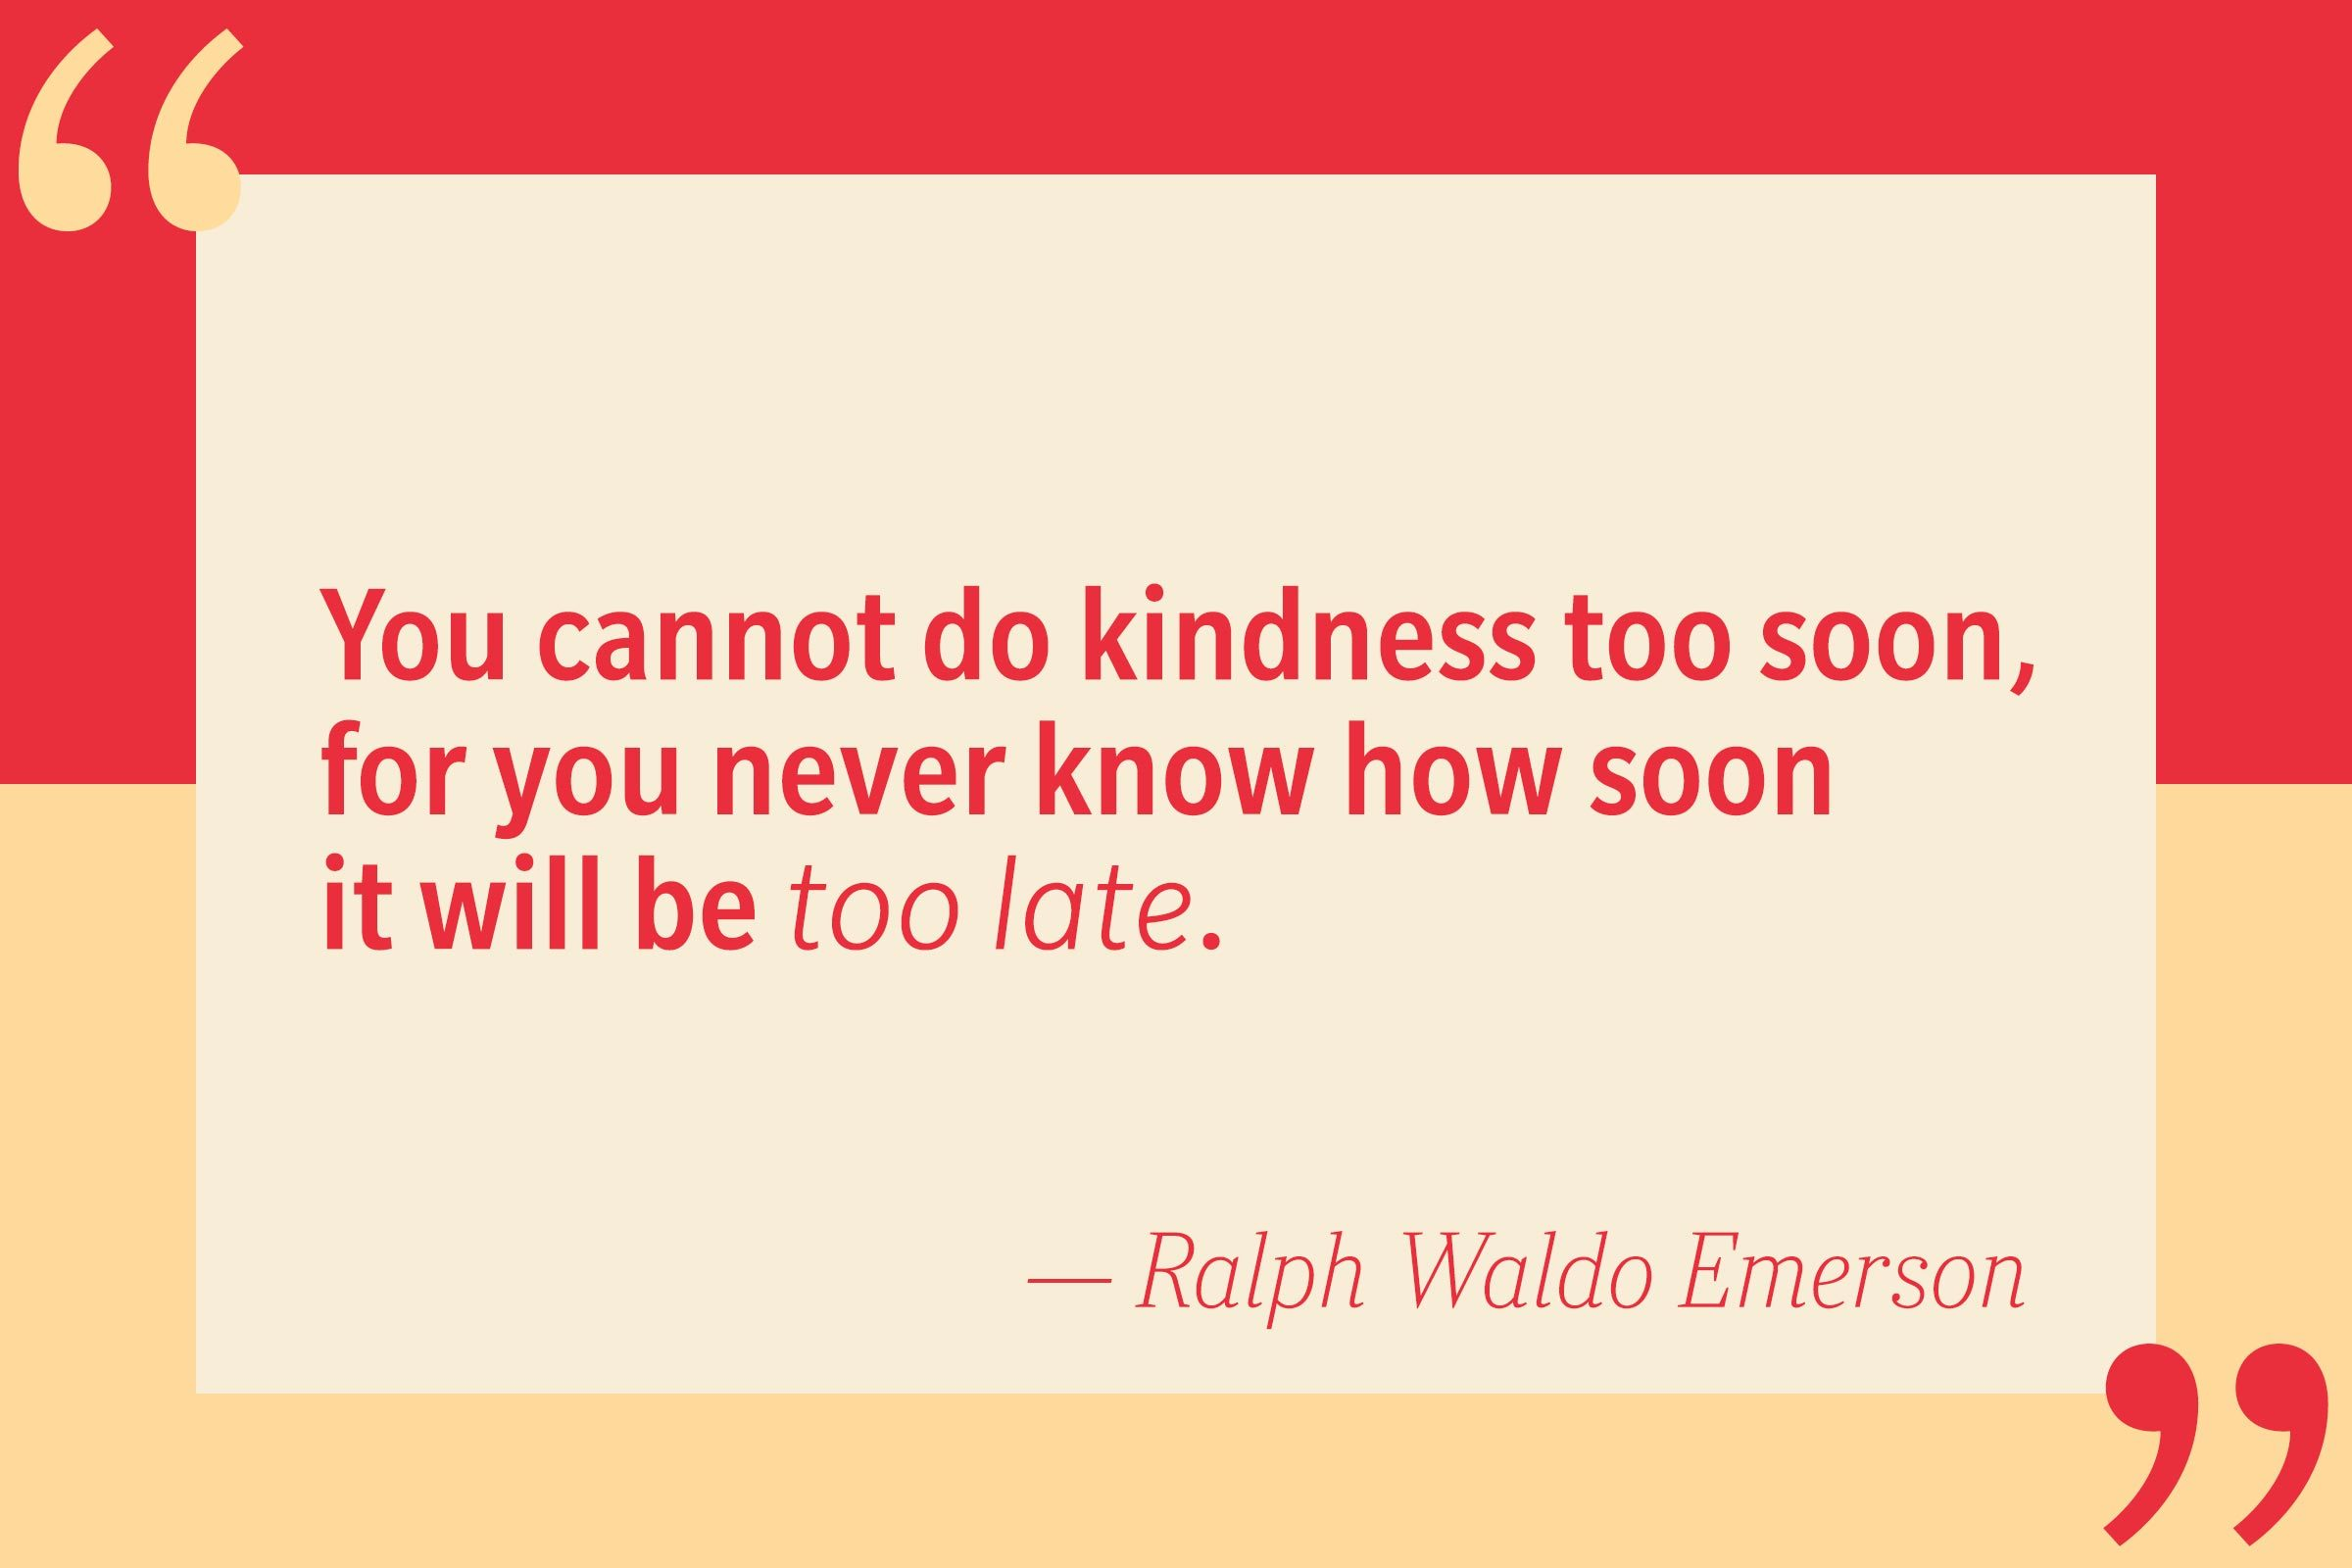 You cannot do kindness too soon, for you never know how soon it will be too late. — Ralph Waldo Emerson